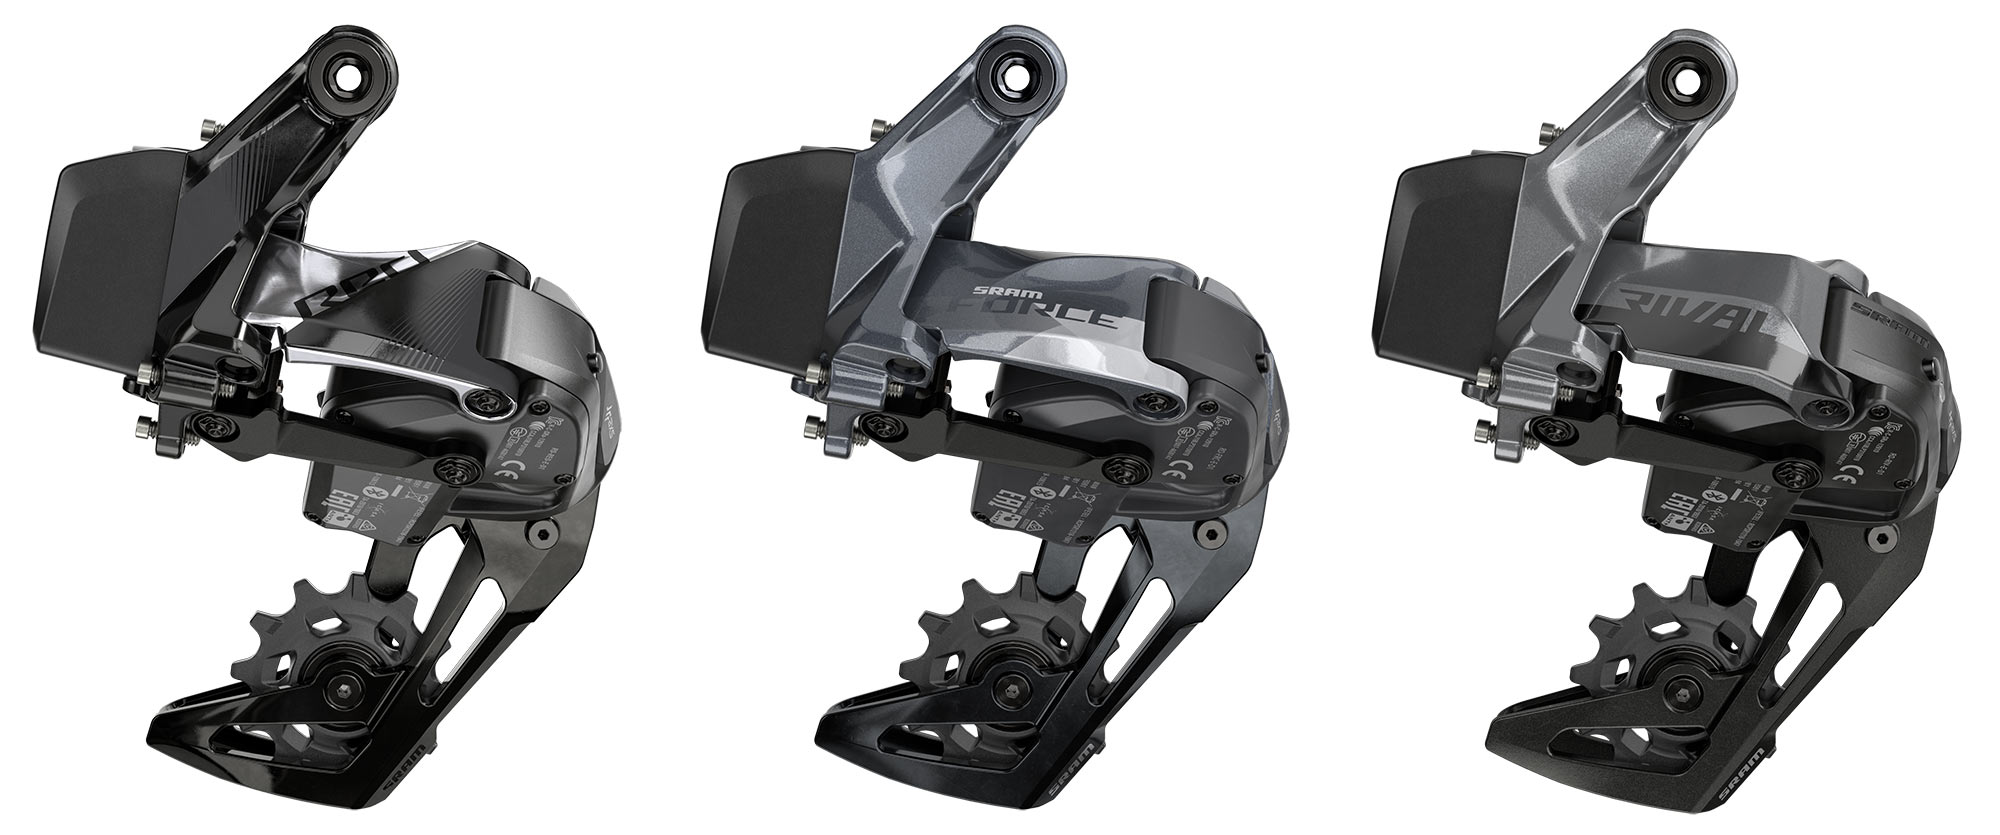 red force and rival xplr wireless rear derailleurs for 1x gravel bikes with wide range cassettes